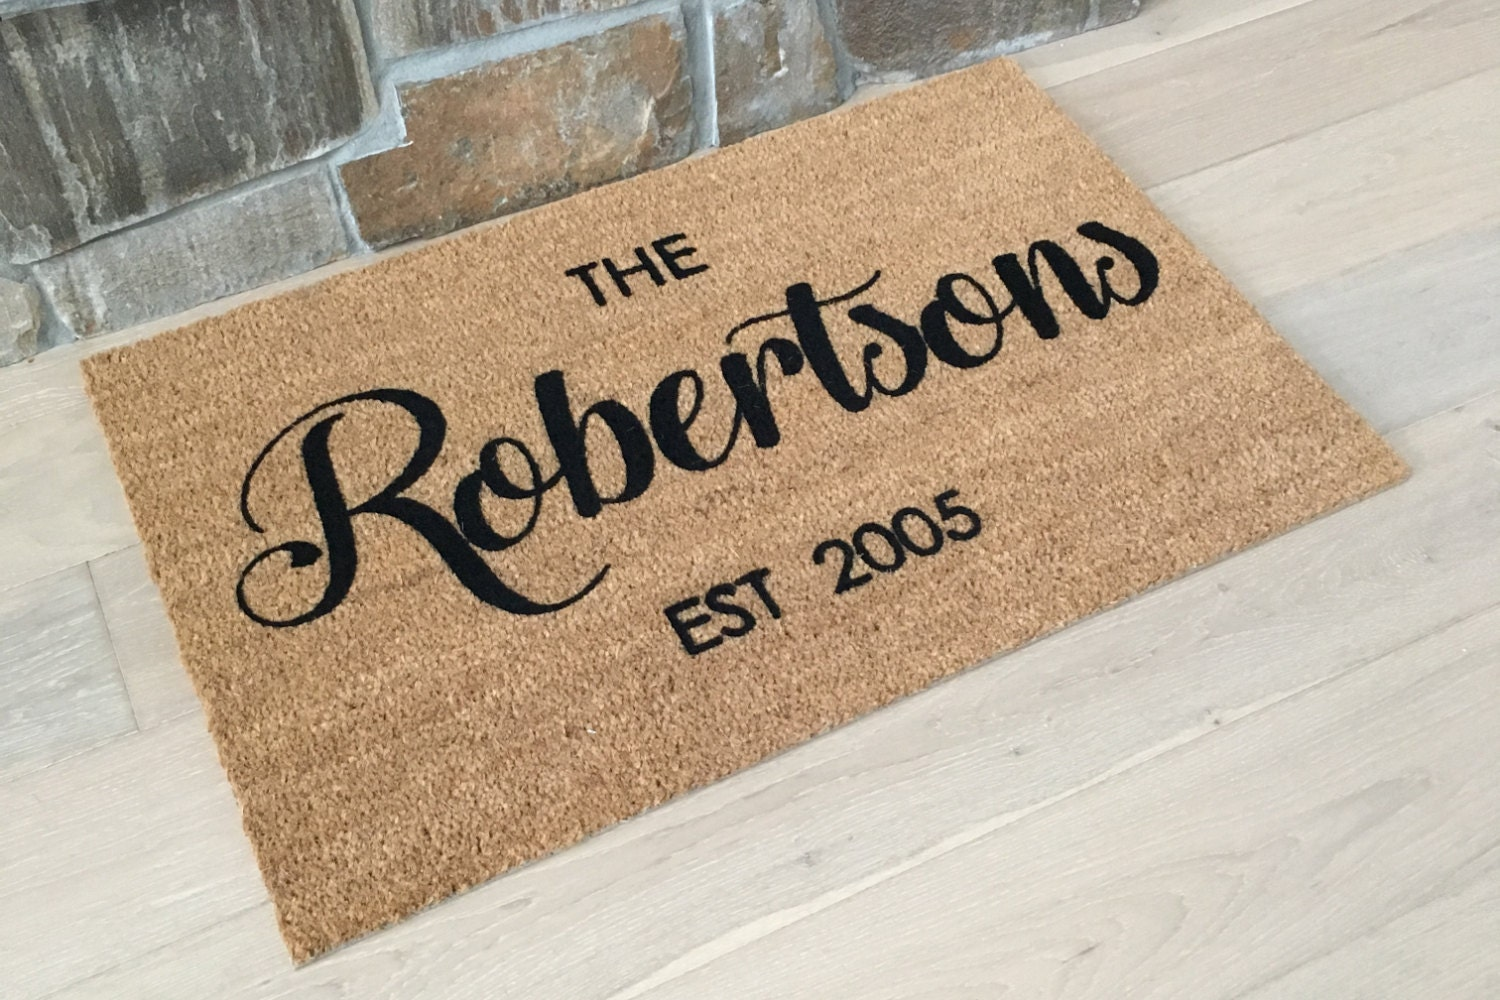 Floor mats kenya - Name Doormat Rug With Family Name Family Name Gift Personalized Doormat Last Name Gift Custom Door Mat